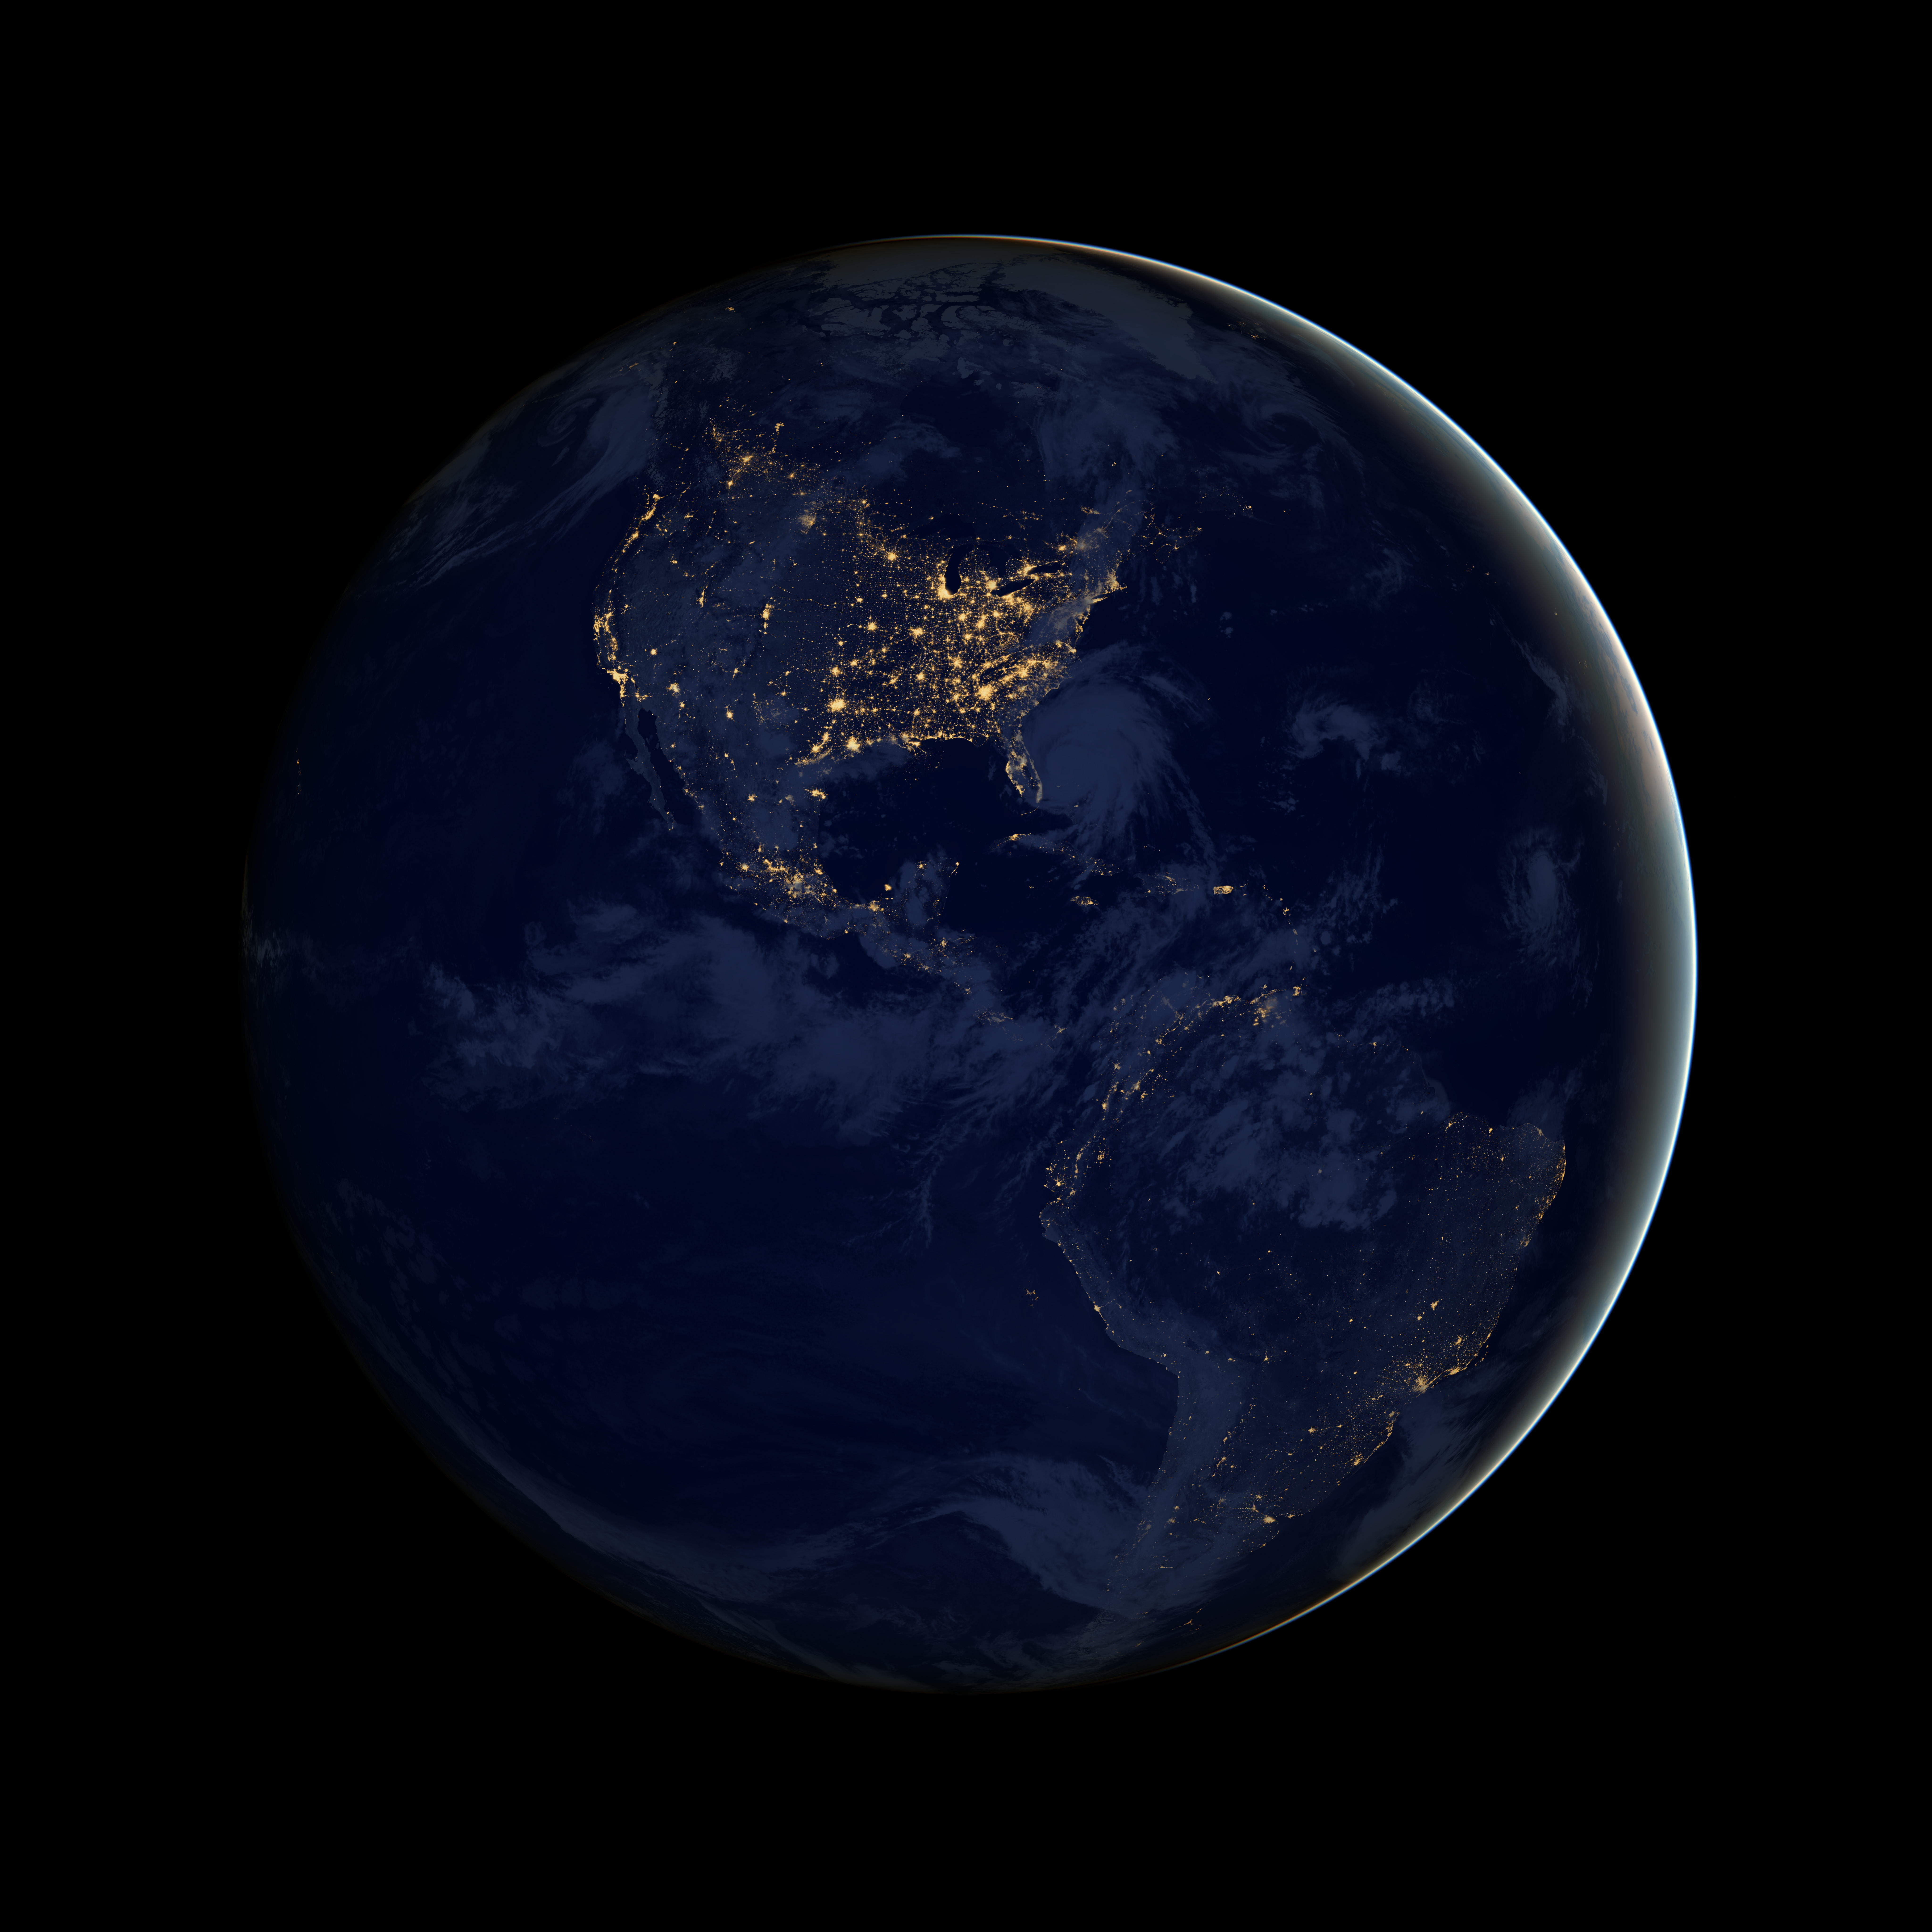 earth day and night elegant figures blogs